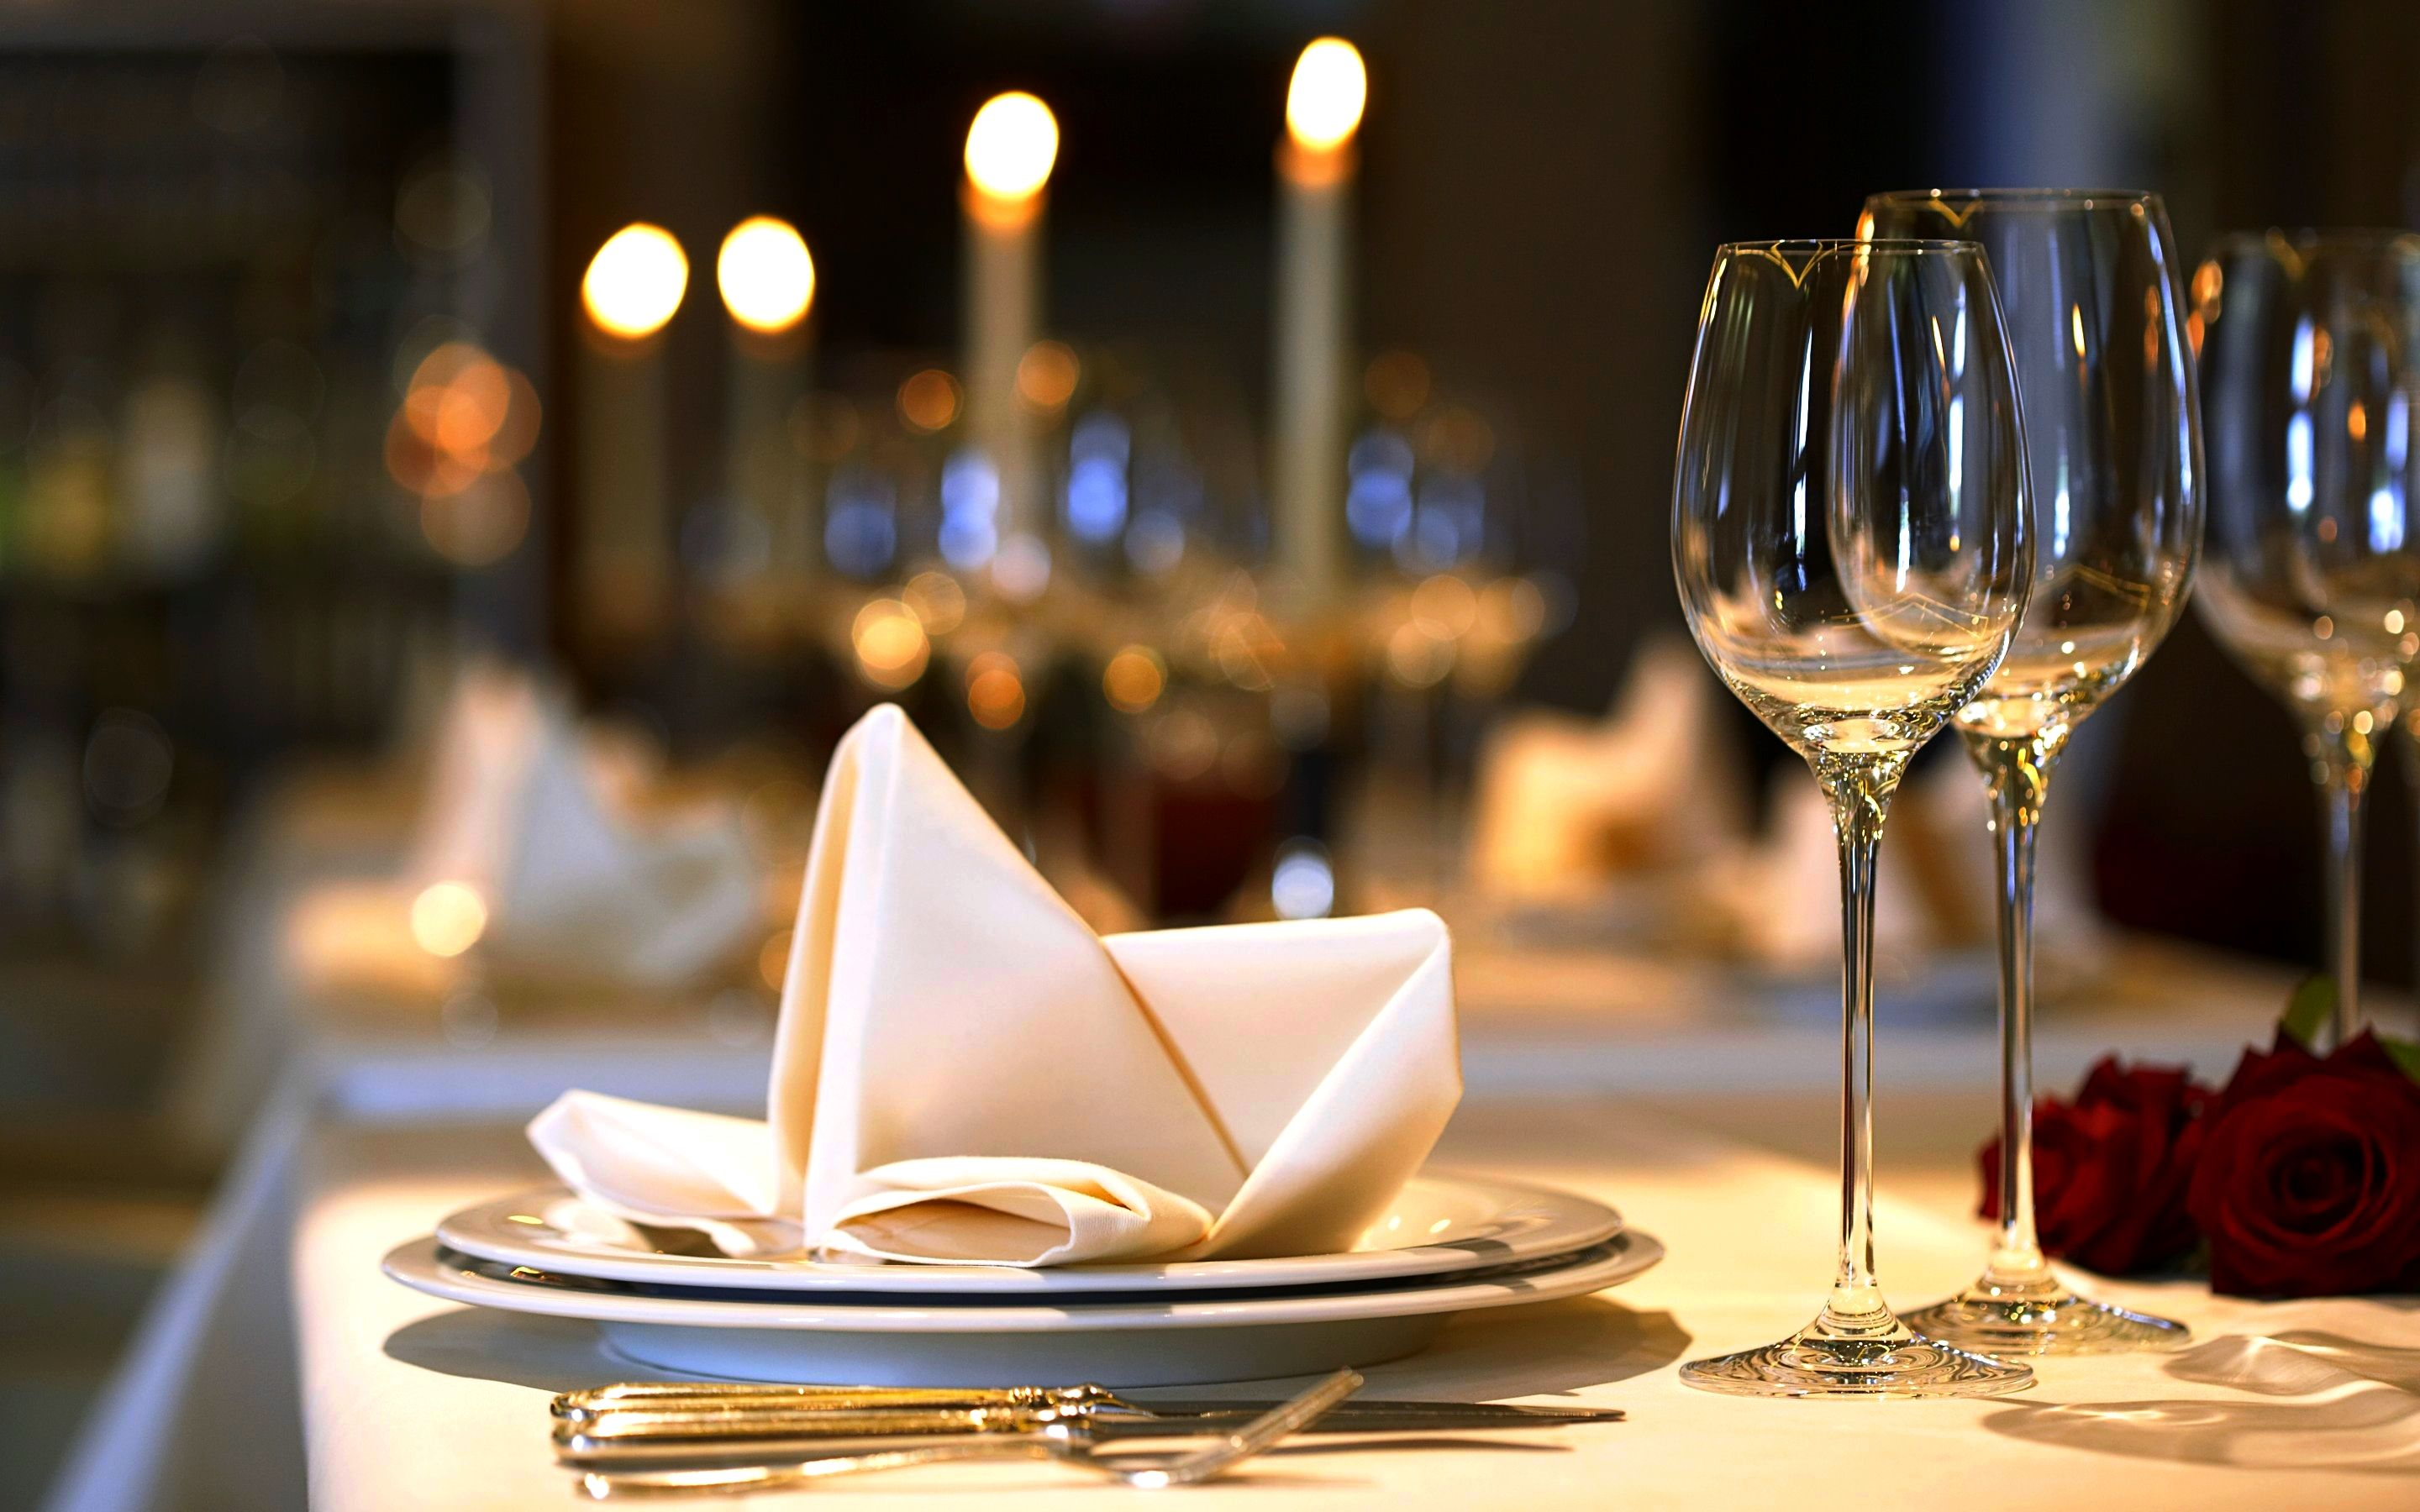 Best Restaurant Loyalty Programs to Seamlessly Draw Customers